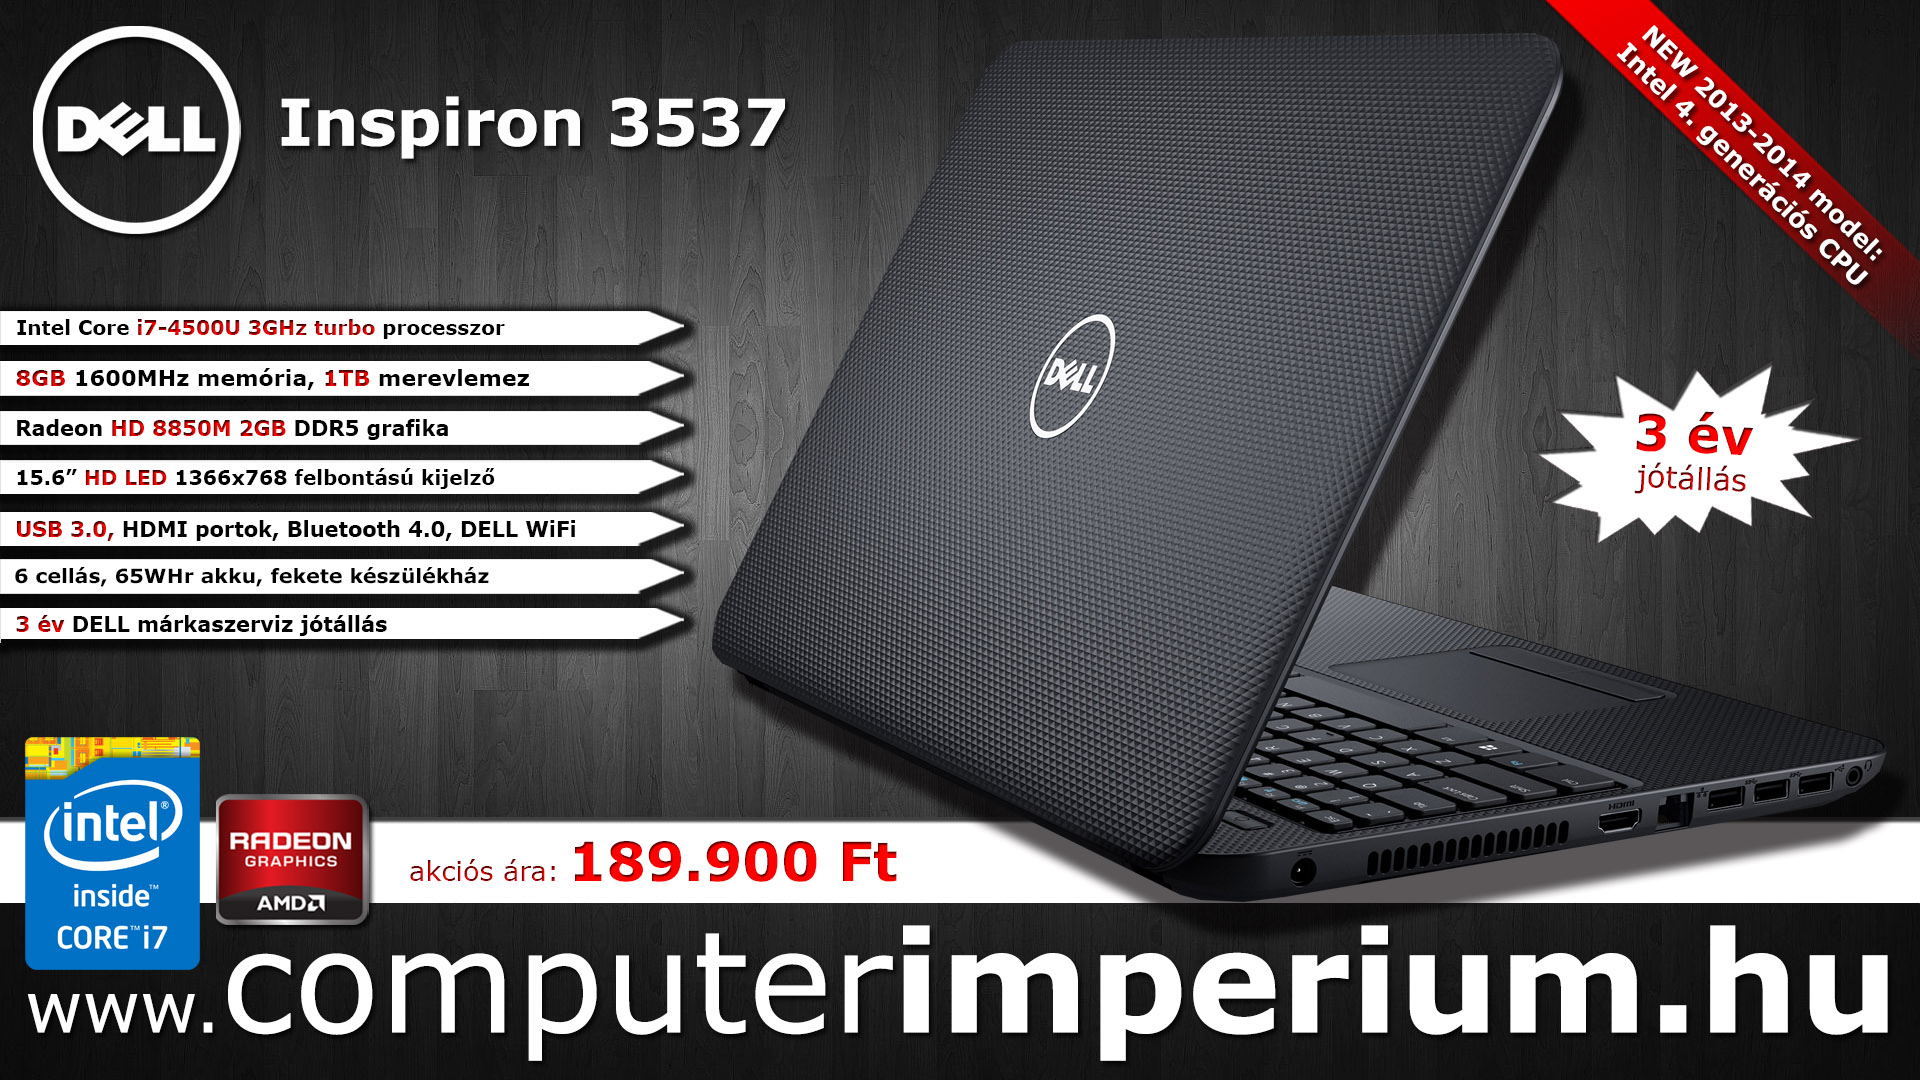 DELL Inspiron 3537 notebook, laptop (157813), 8GB RAM-mal!!!